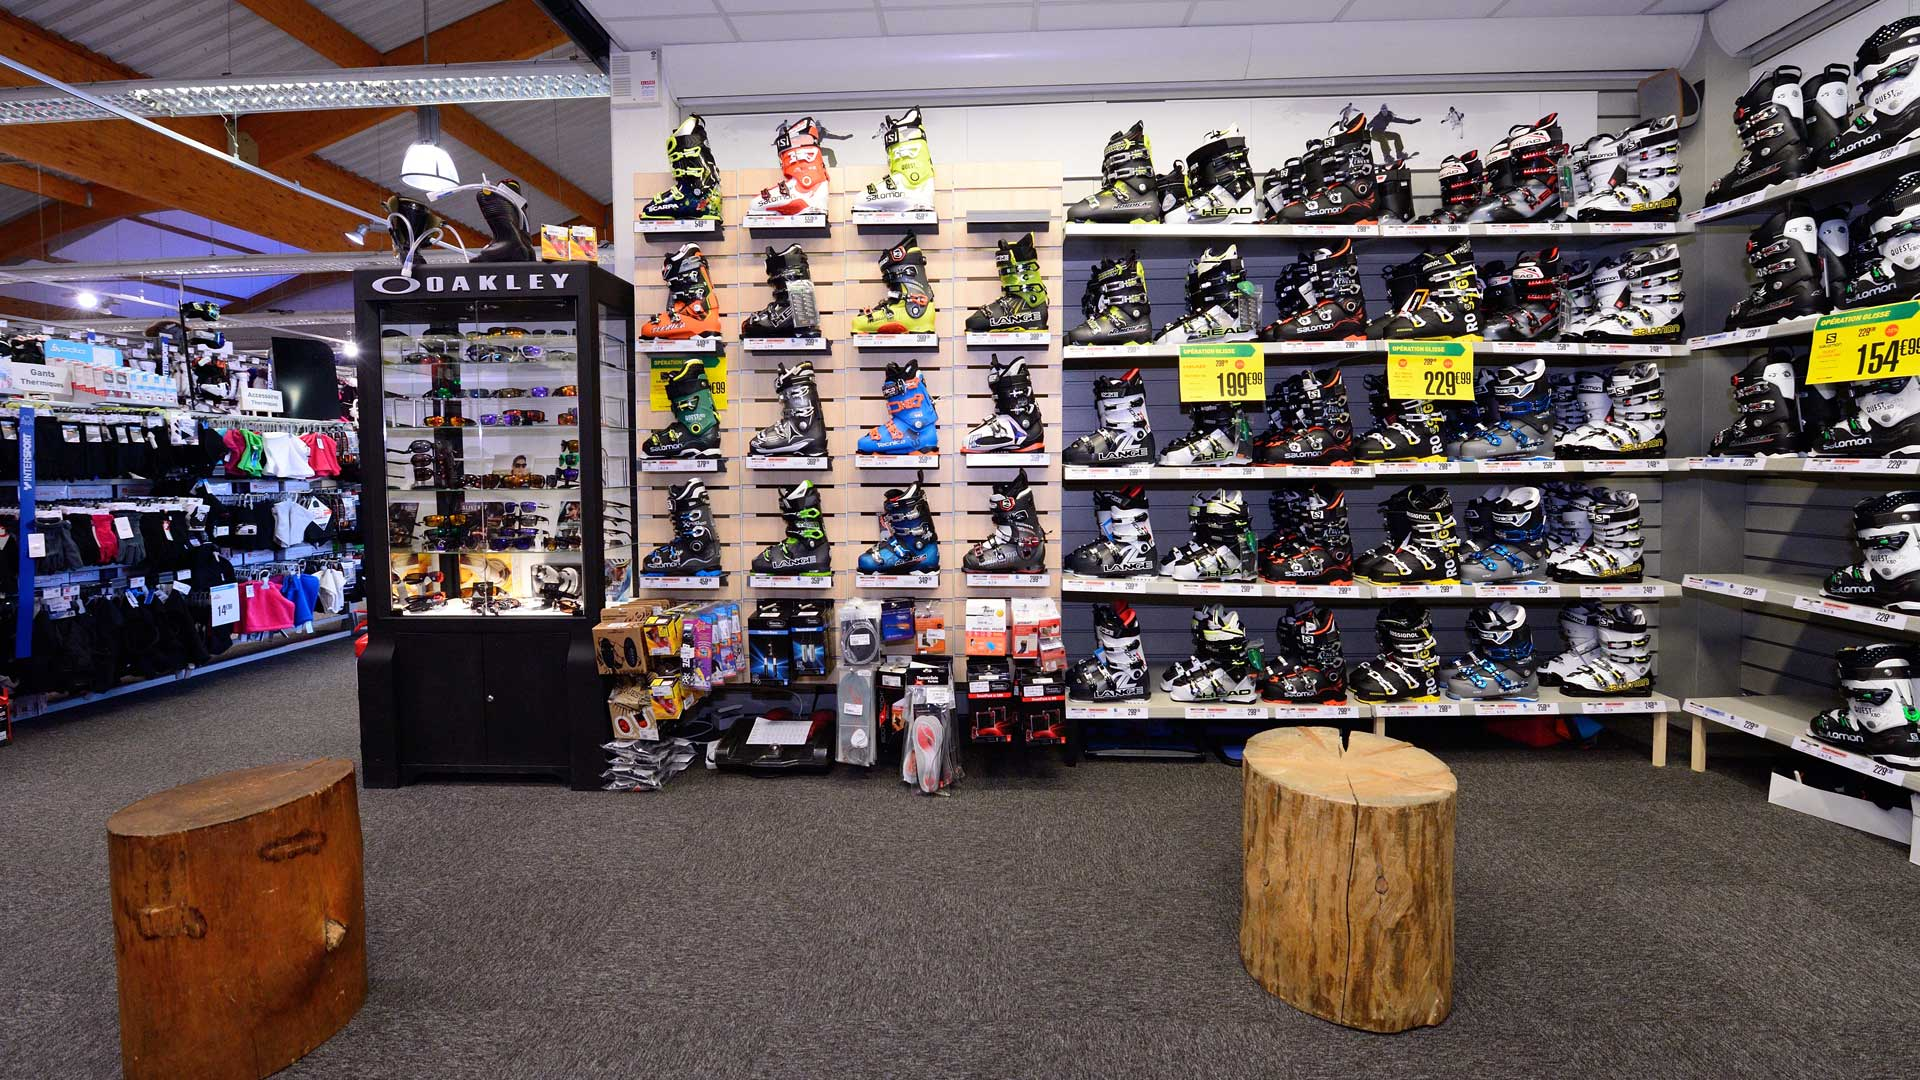 INTERSPORT Bourg-Saint-Maurice, rayon chaussures de ski